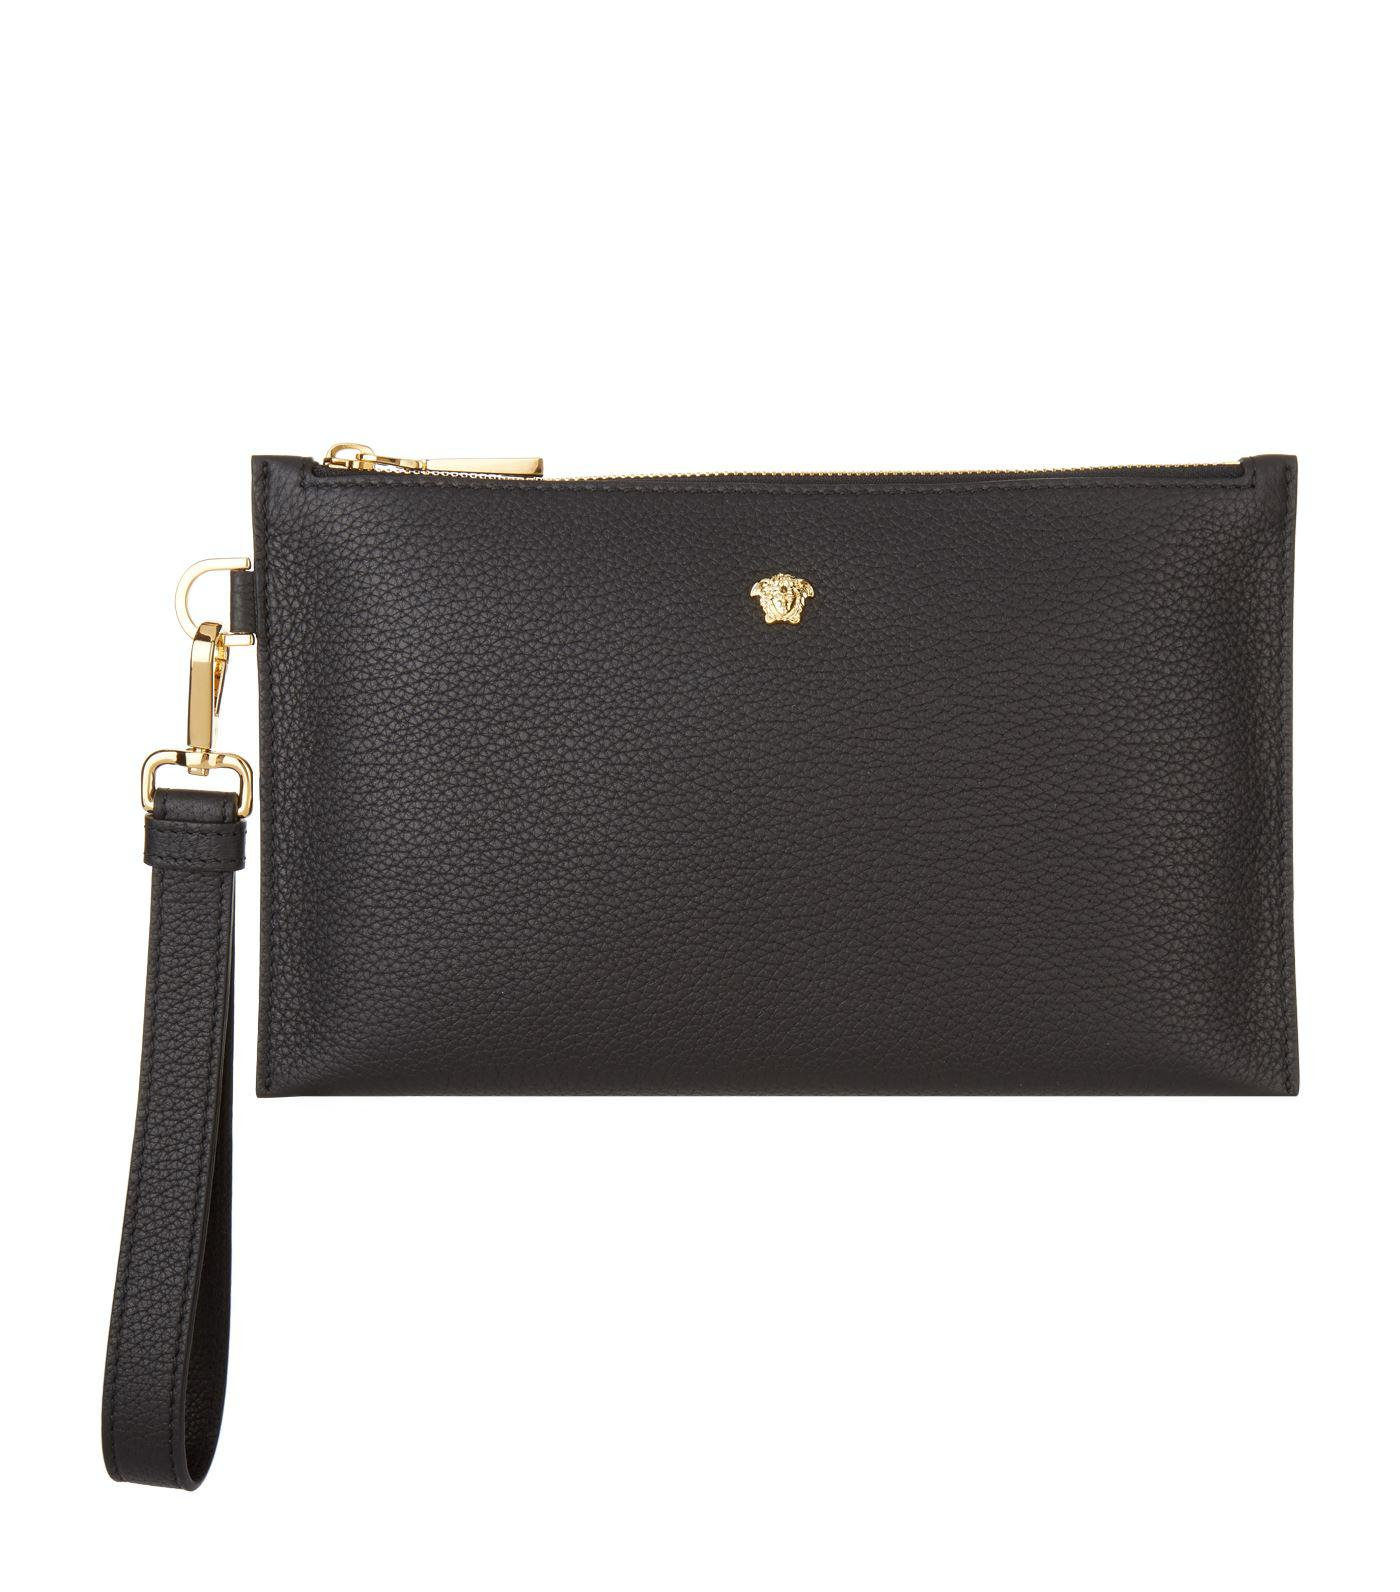 6e62d73b0acb Lyst - Versace Medusa Pouch in Black